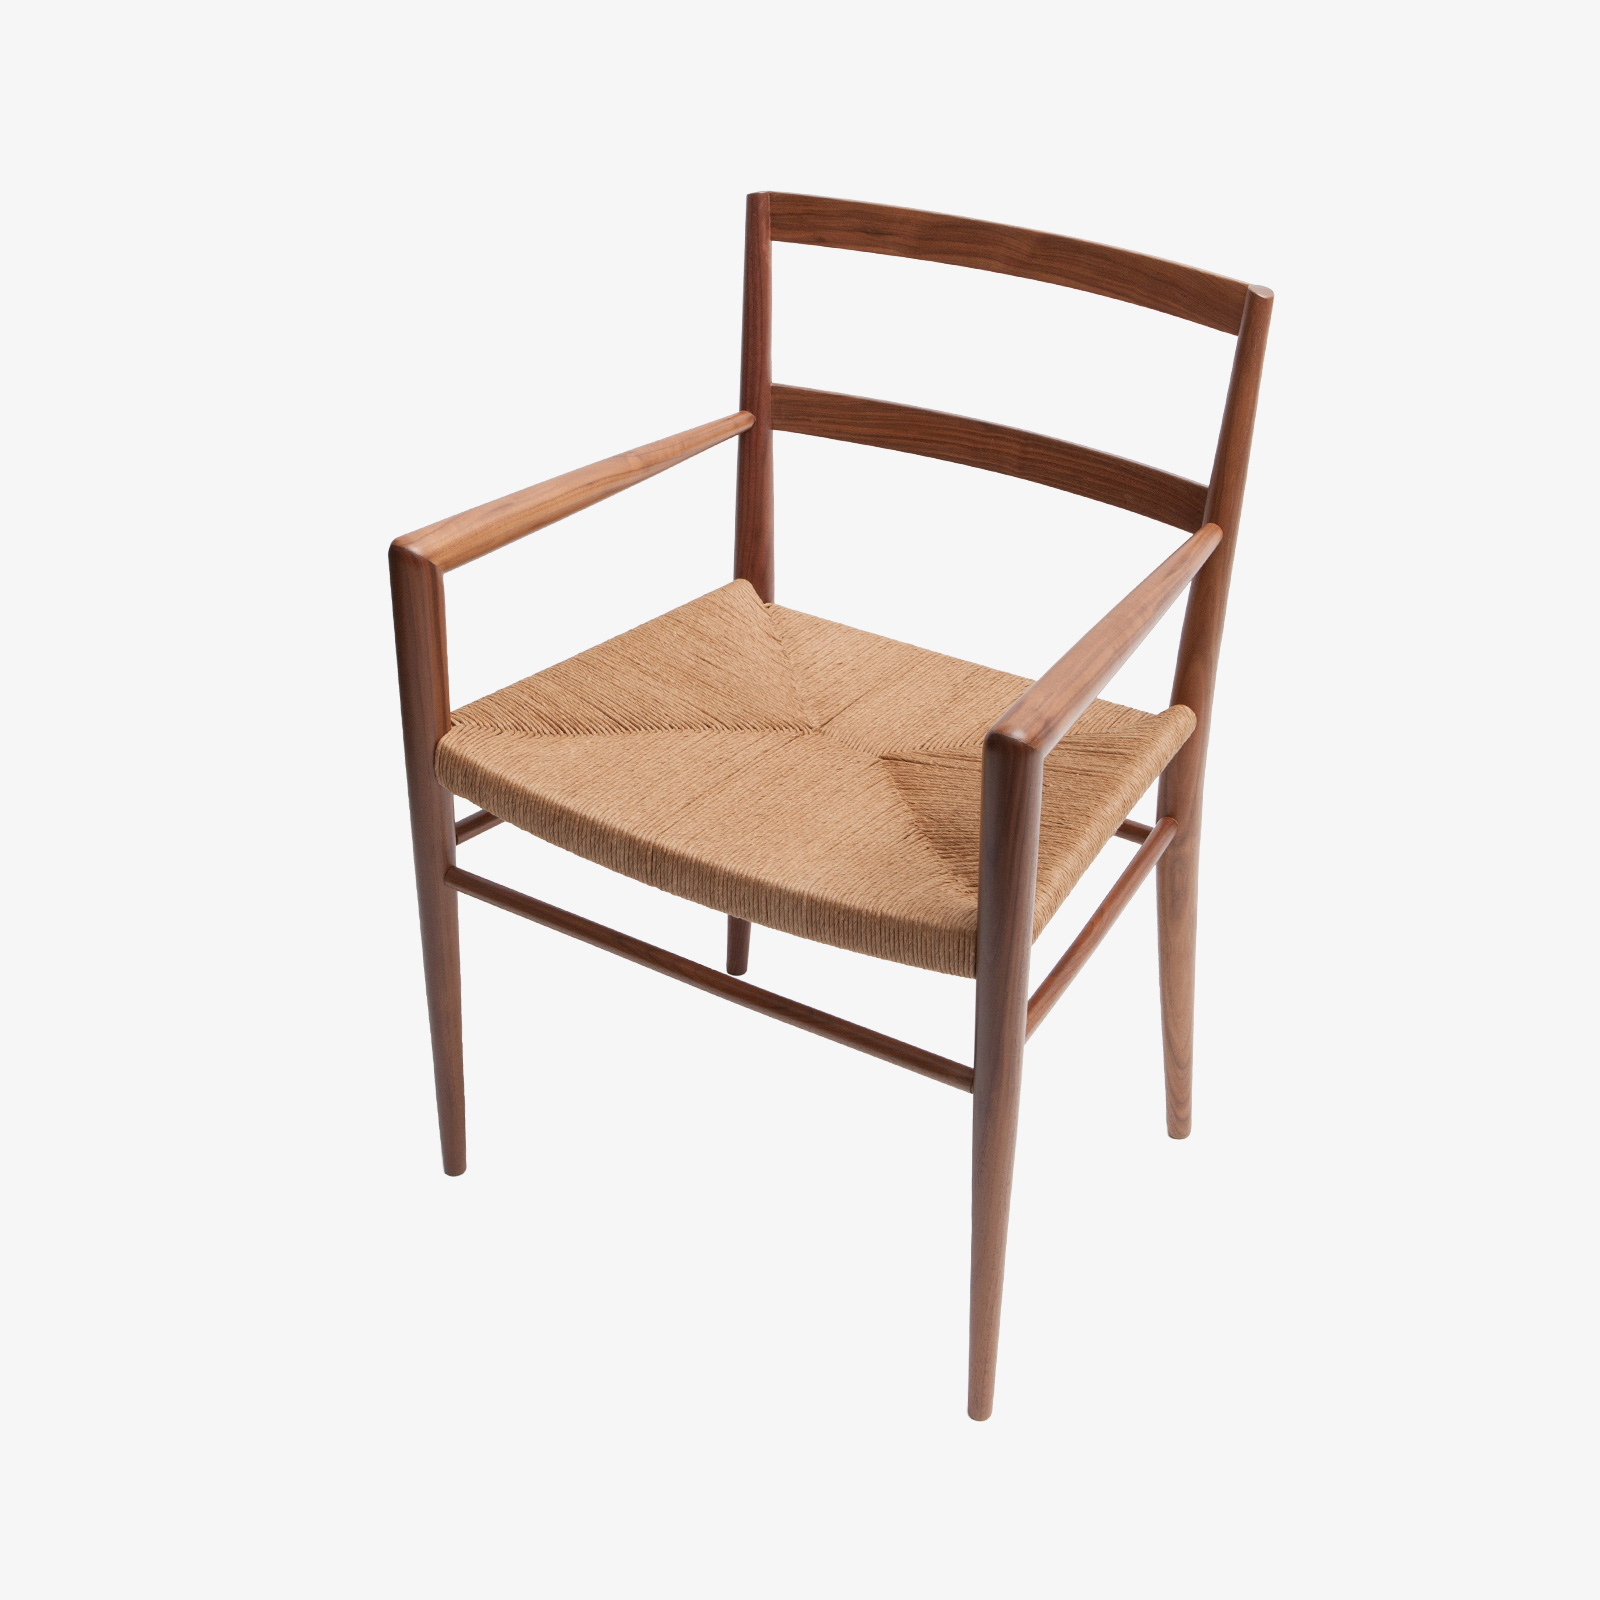 Hand woven rush seat dining chair by Smilow Furniture